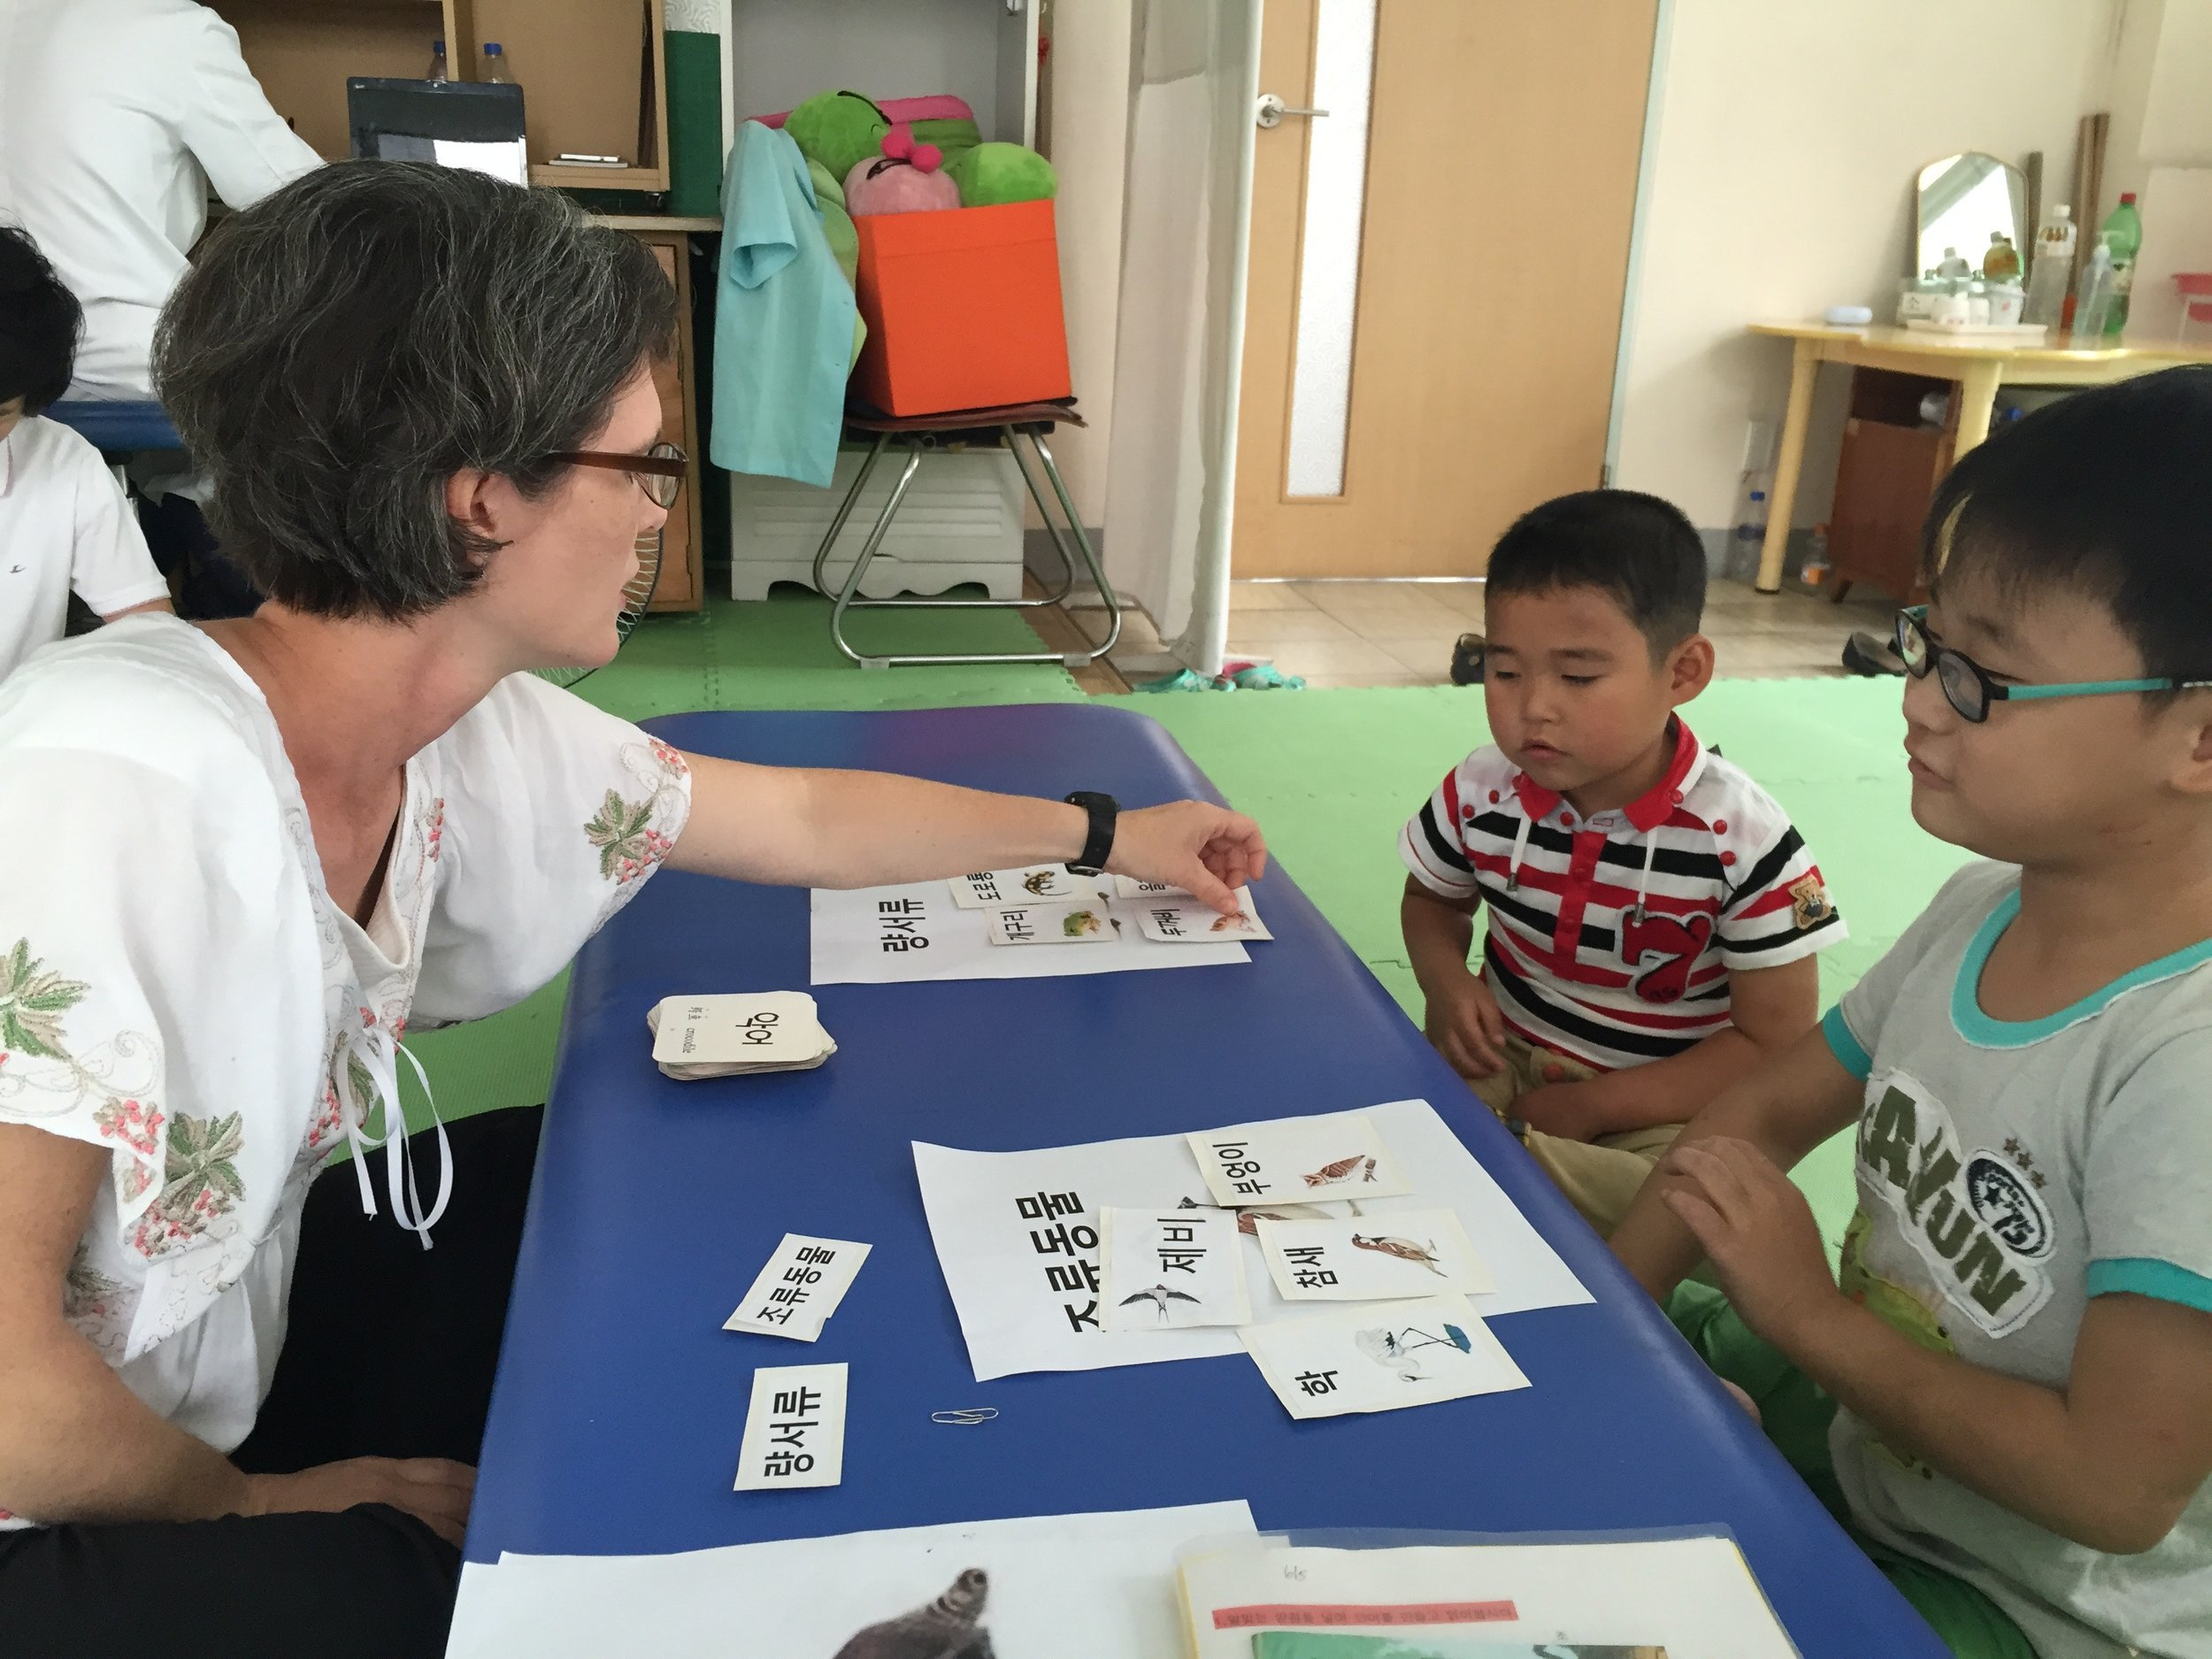 Teaching cognitive reasoning skills through a science lesson to North Korean children with cerebral palsy